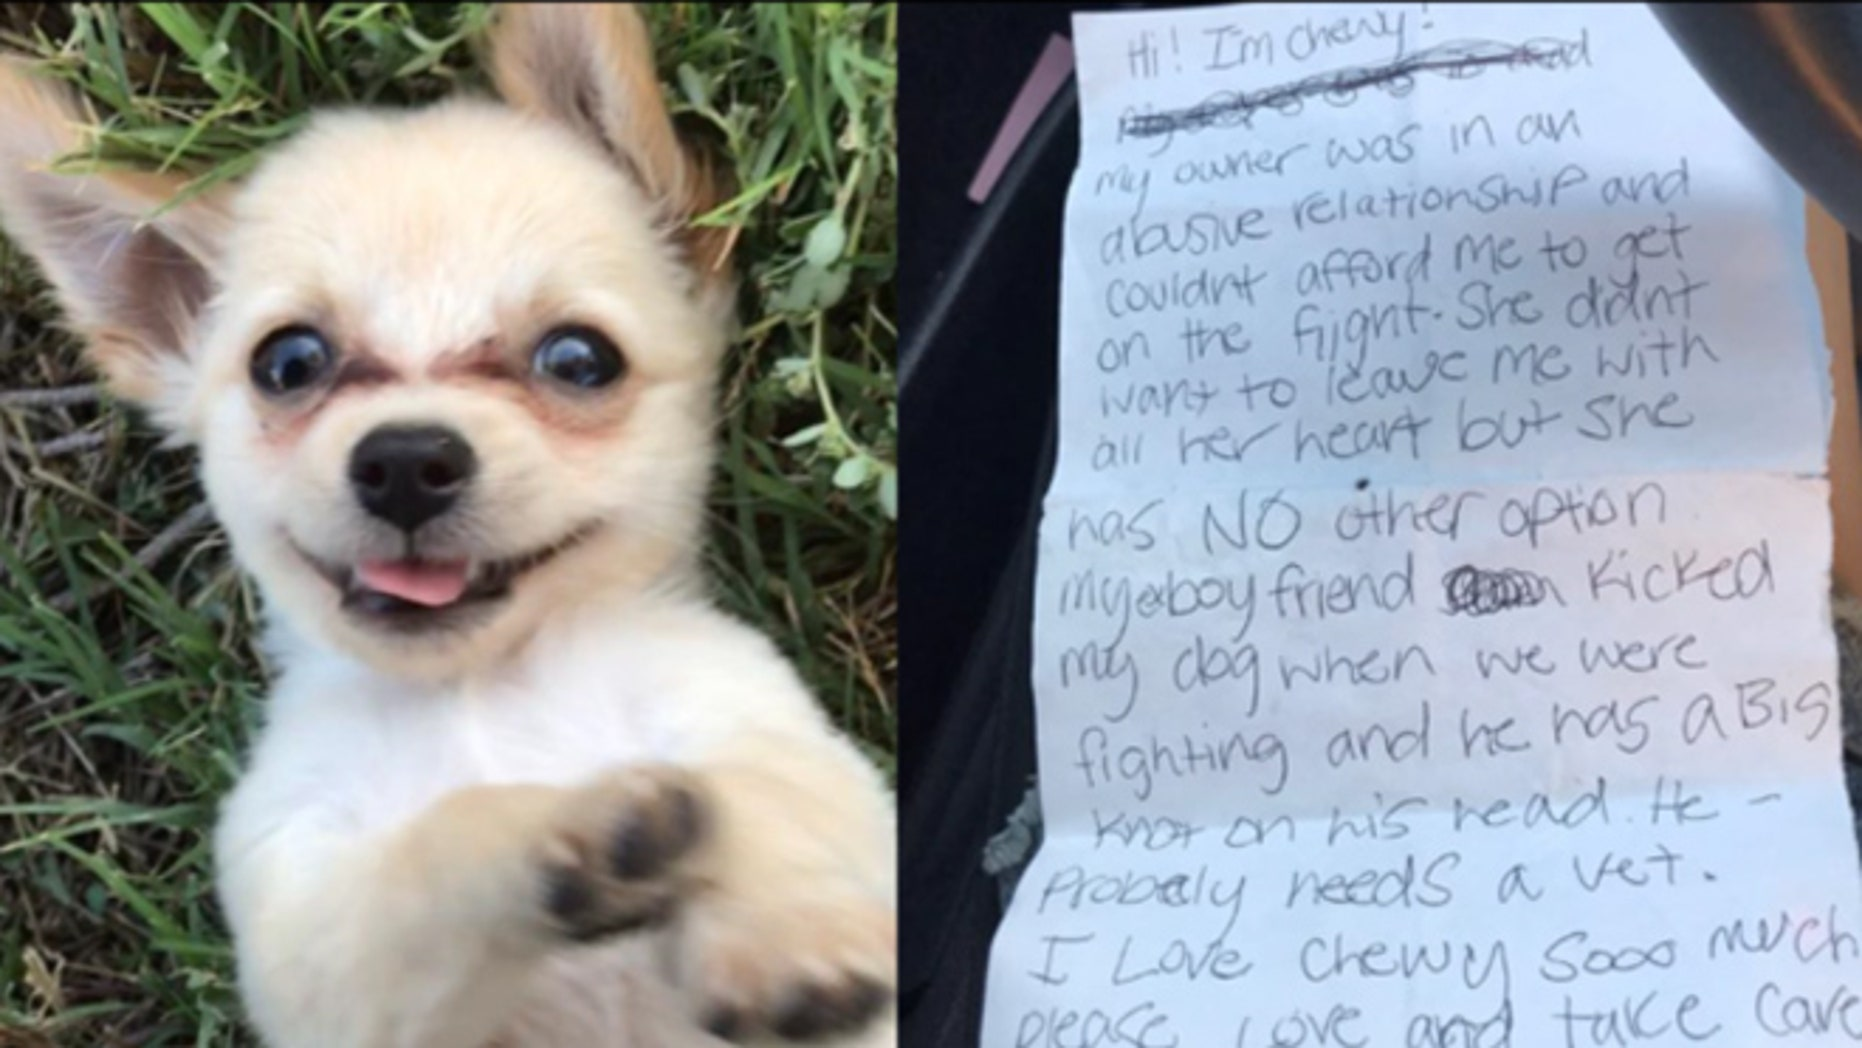 Three-month-old Chewy was abandoned in a Las Vegas Airport bathroom with a handwritten note.